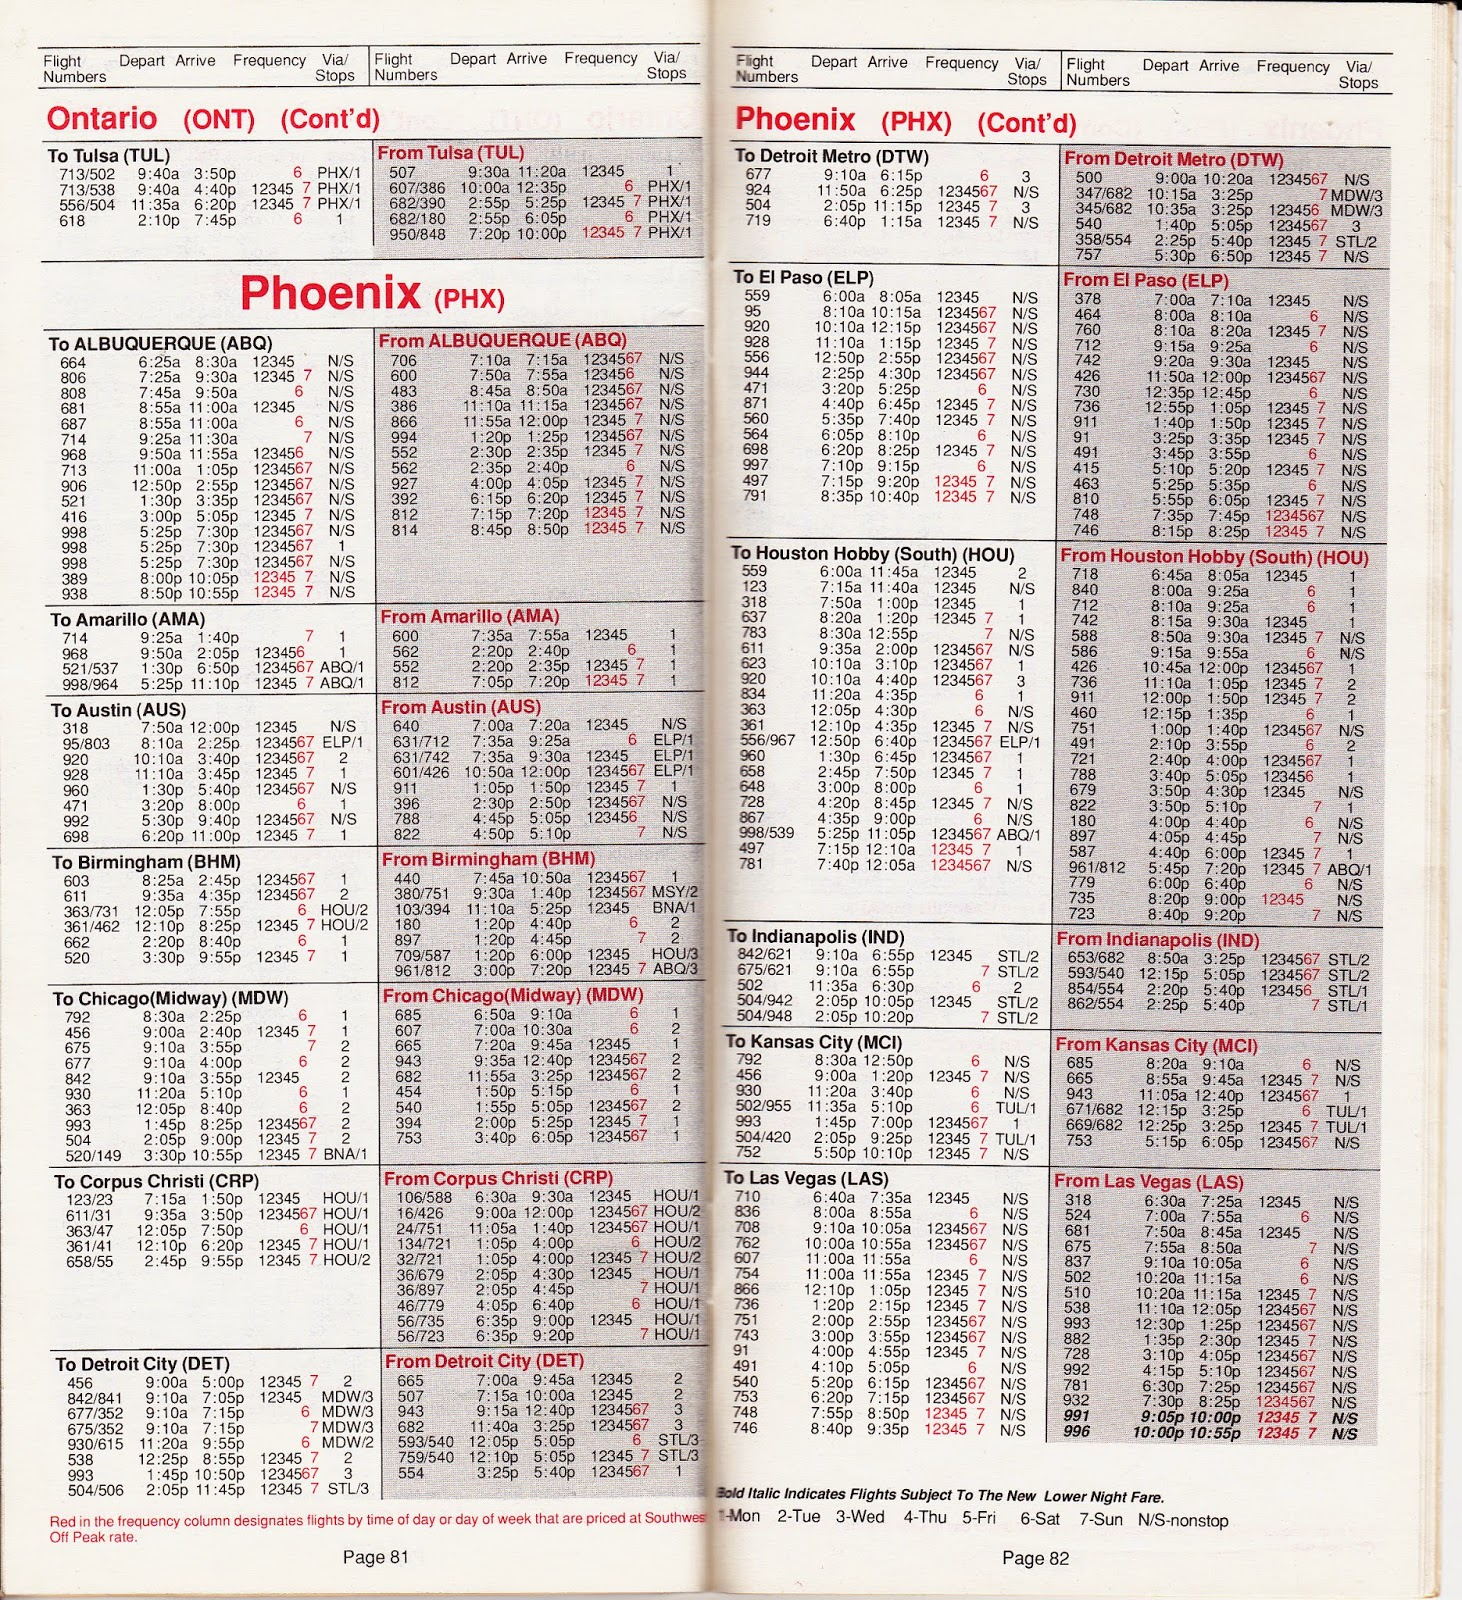 Airline Timetables: Southwest Airlines - April, 1990 on allegiant air, los angeles international airport, alaska airlines, frontier airlines, denver international airport, frontier airlines schedule, us airways, alaska airlines schedule, porter airlines schedule, people express airlines schedule, airtran airways, spirit airlines, grand canyon airlines schedule, compass airlines schedule, virgin america, southwest flight status, empire airlines schedule, air canada, allegiant airlines schedule, biman bangladesh airlines schedule, fedex schedule, sky king airlines schedule, delta air lines, jetblue airways, horizon airlines schedule, united airlines schedule, spirit airlines schedule, continental airlines, air koryo schedule, great lakes airlines schedule, republic services schedule, british airways, transportation schedule, american airlines, united airlines, jetblue schedule,